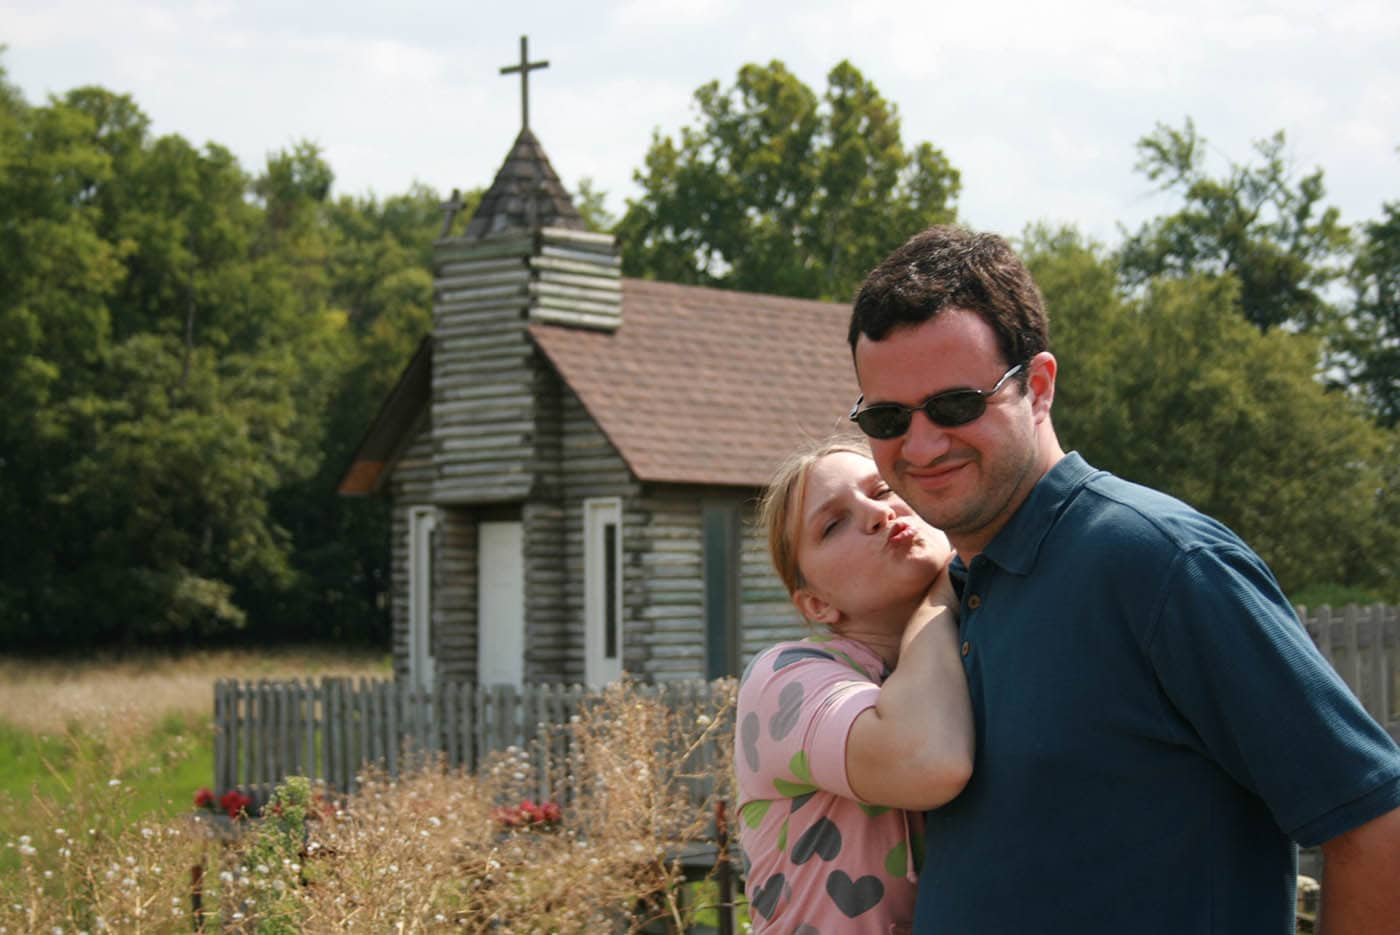 ILLINOIS ROAD TRIP AND ROADSIDE ATTRACTIONS: TINY CHURCH - THE TRAVELER'S CHAPEL IN NASHVILLE